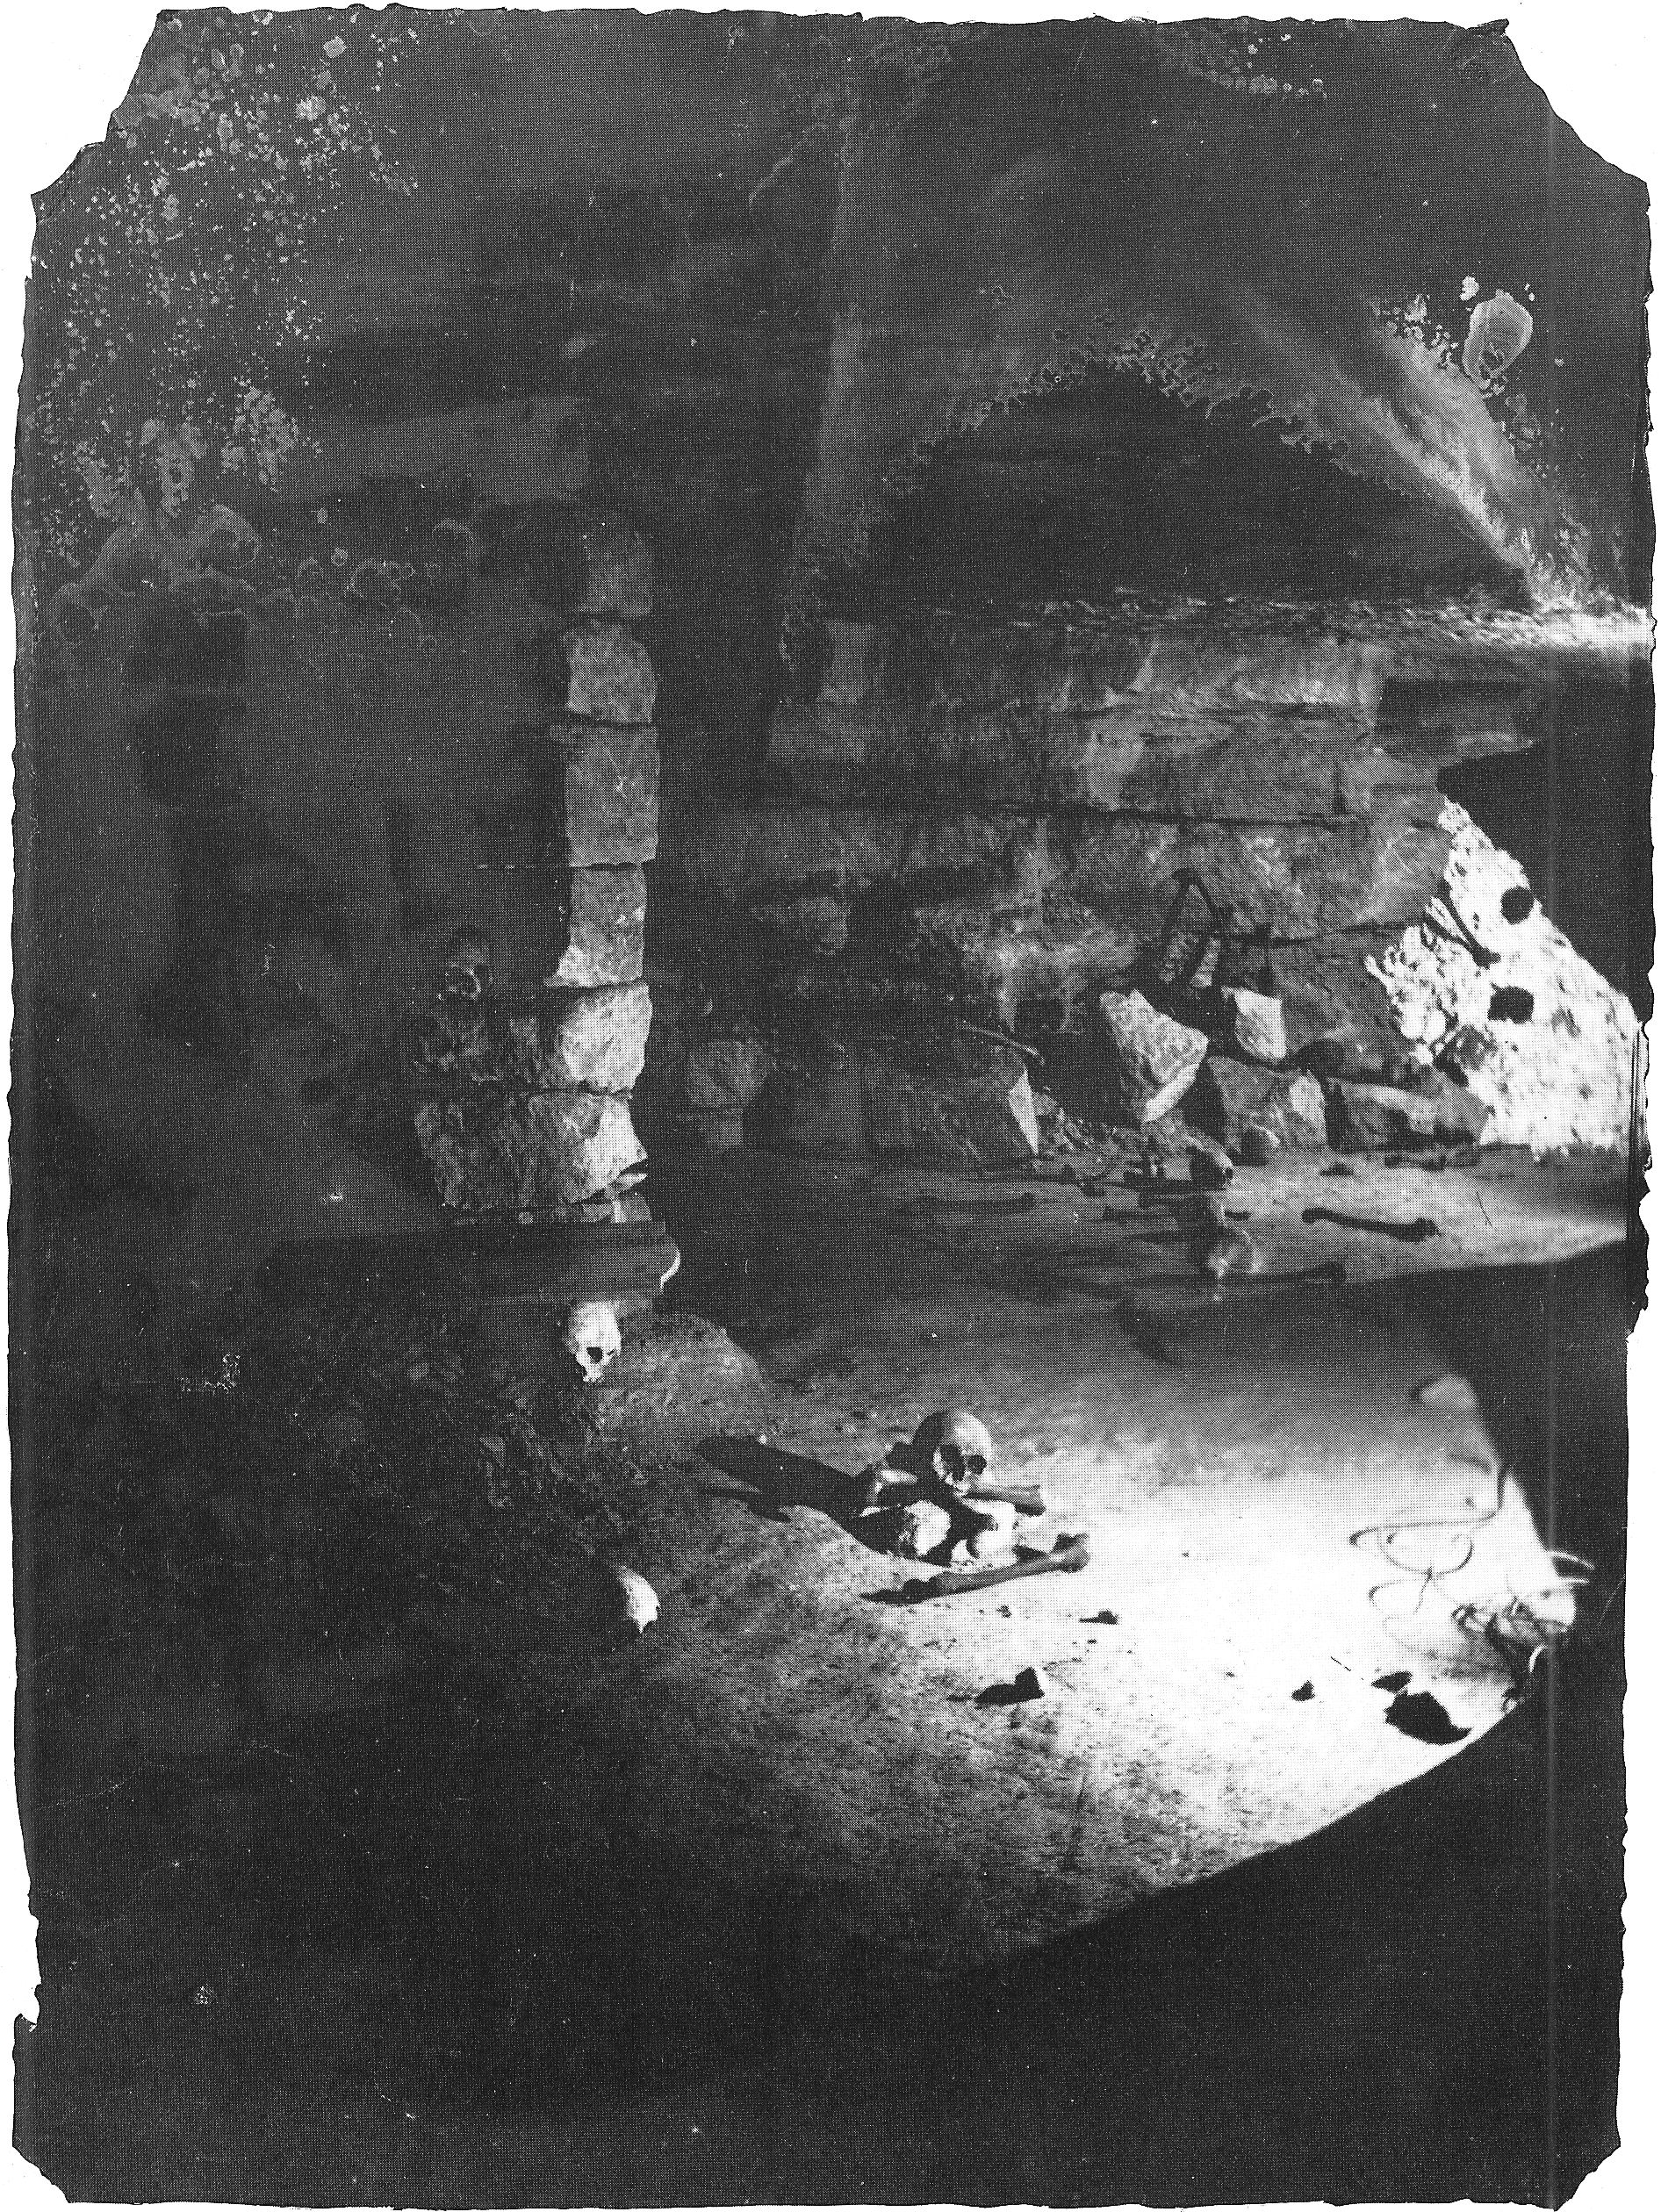 Nadar, 1861, Catacombes de Paris